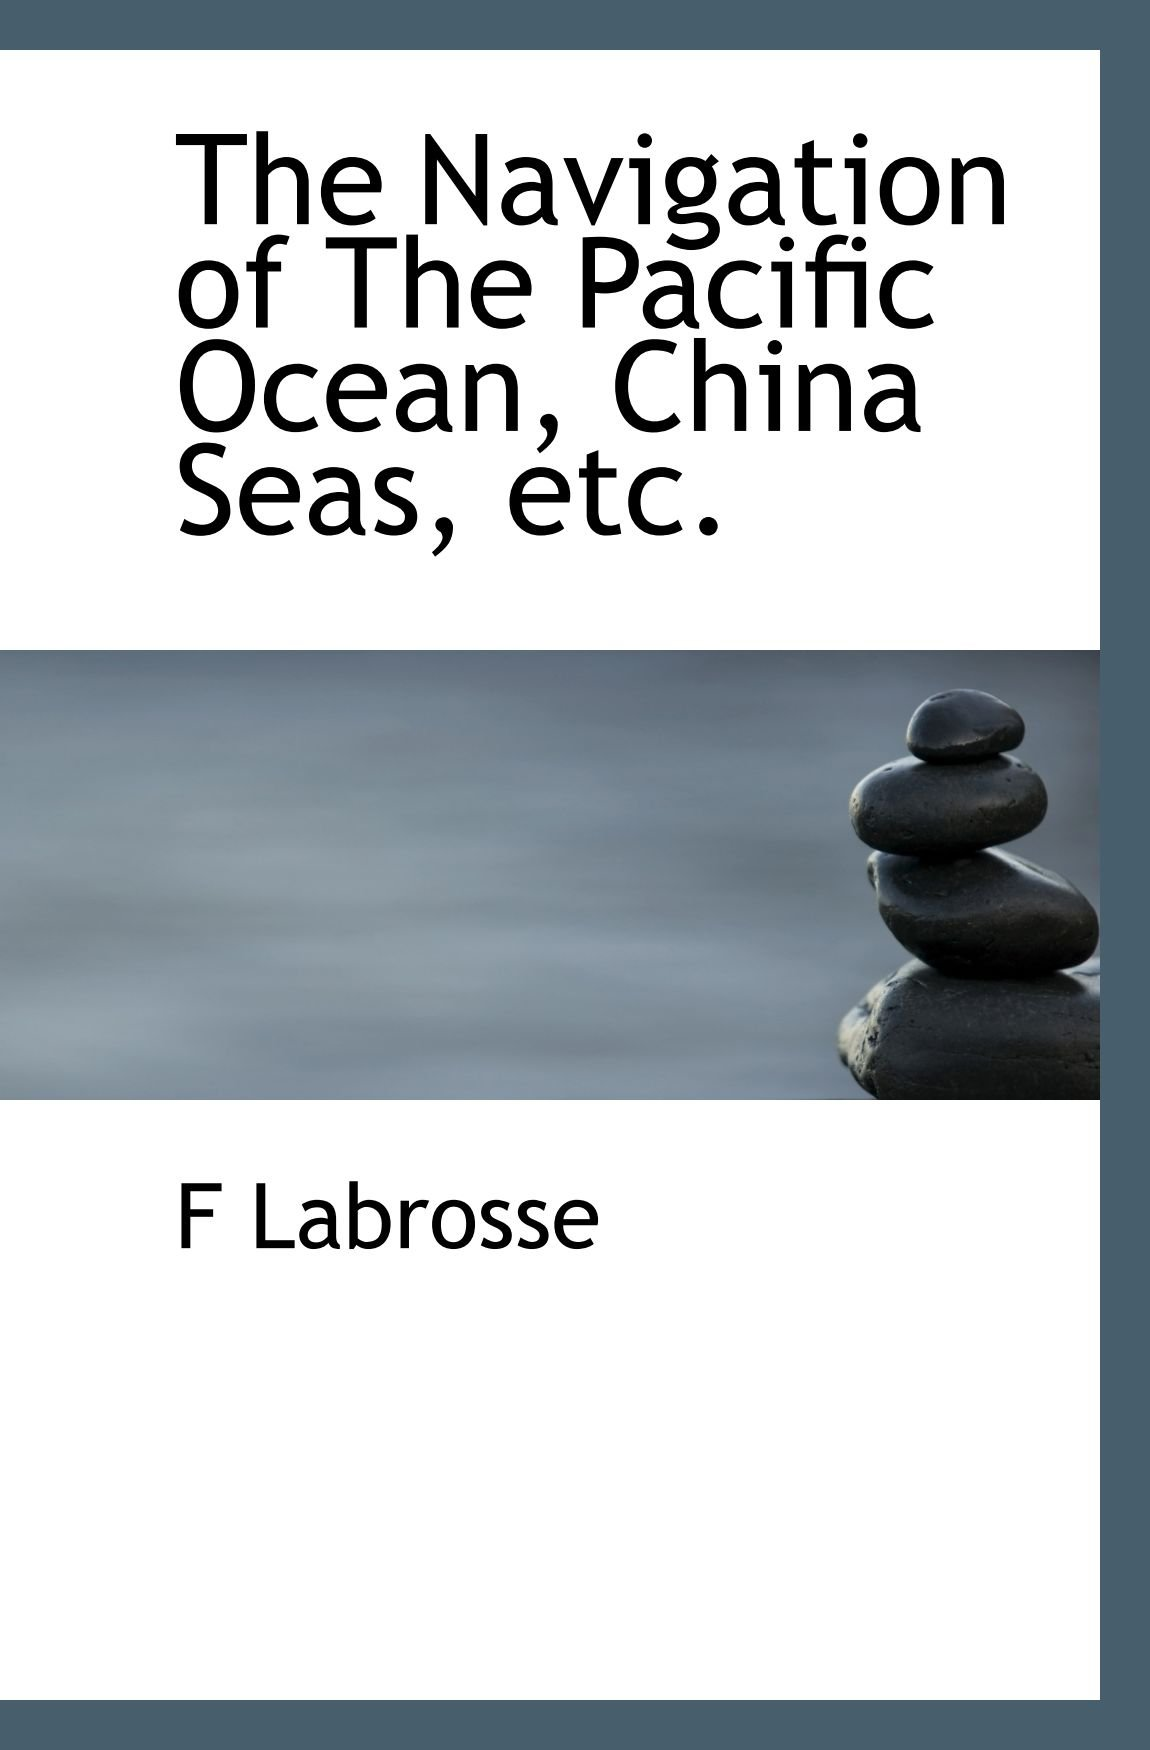 The Navigation of The Pacific Ocean, China Seas, etc. ebook